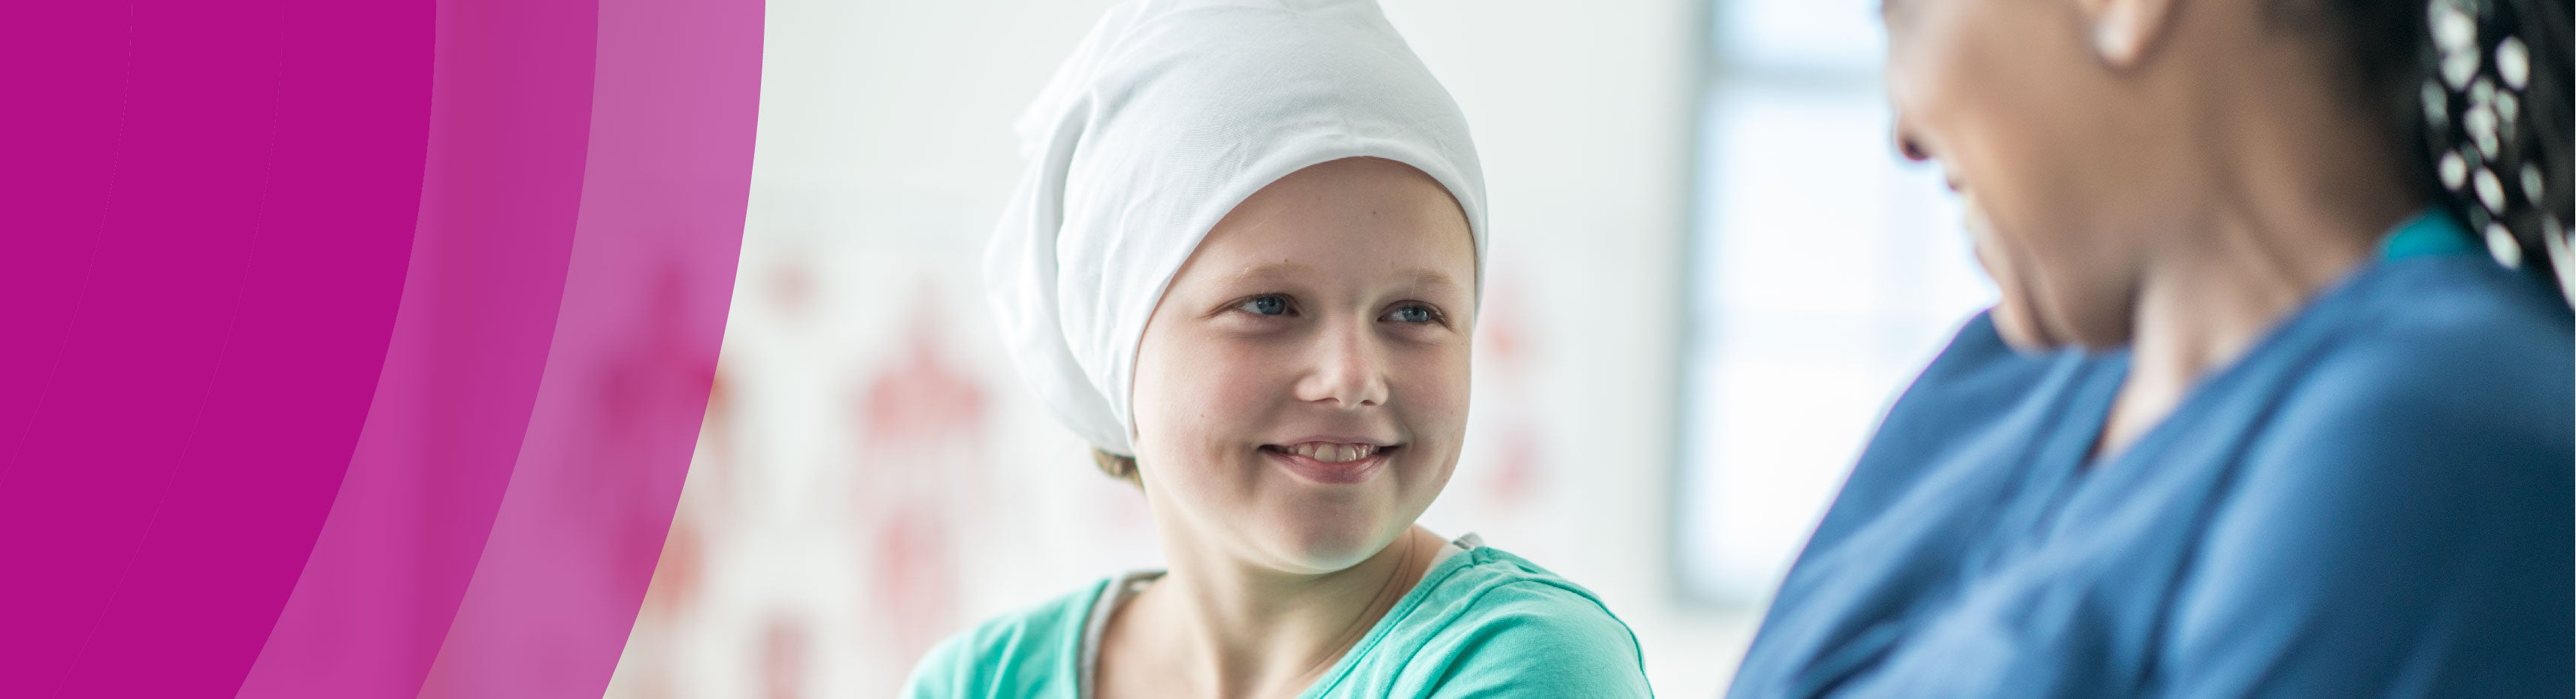 healthcare worker and child with head-wrap smile at each other